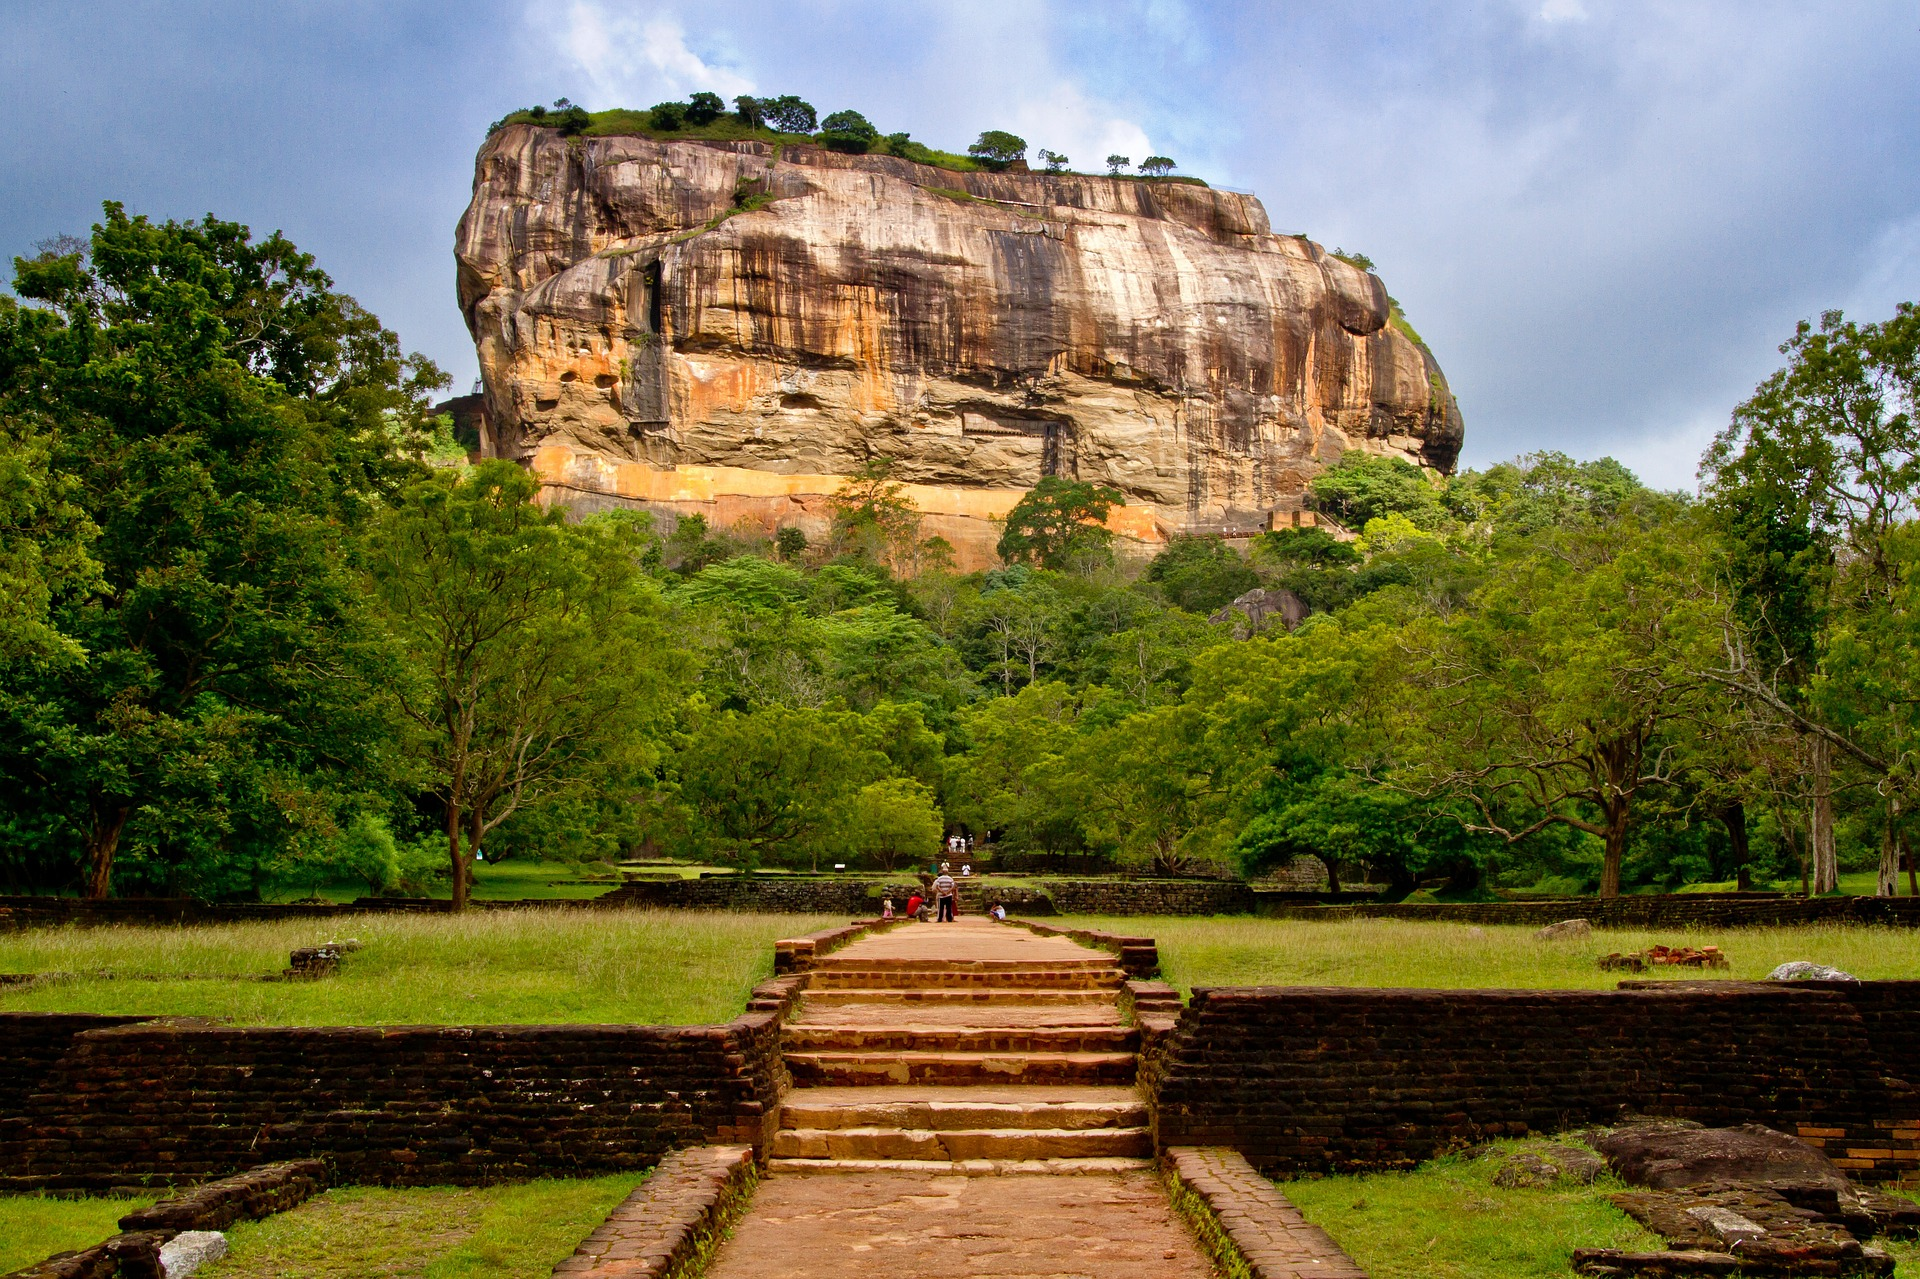 Sigiriya or Sinhagiri is an ancient rock fortress located in Sri Lanka